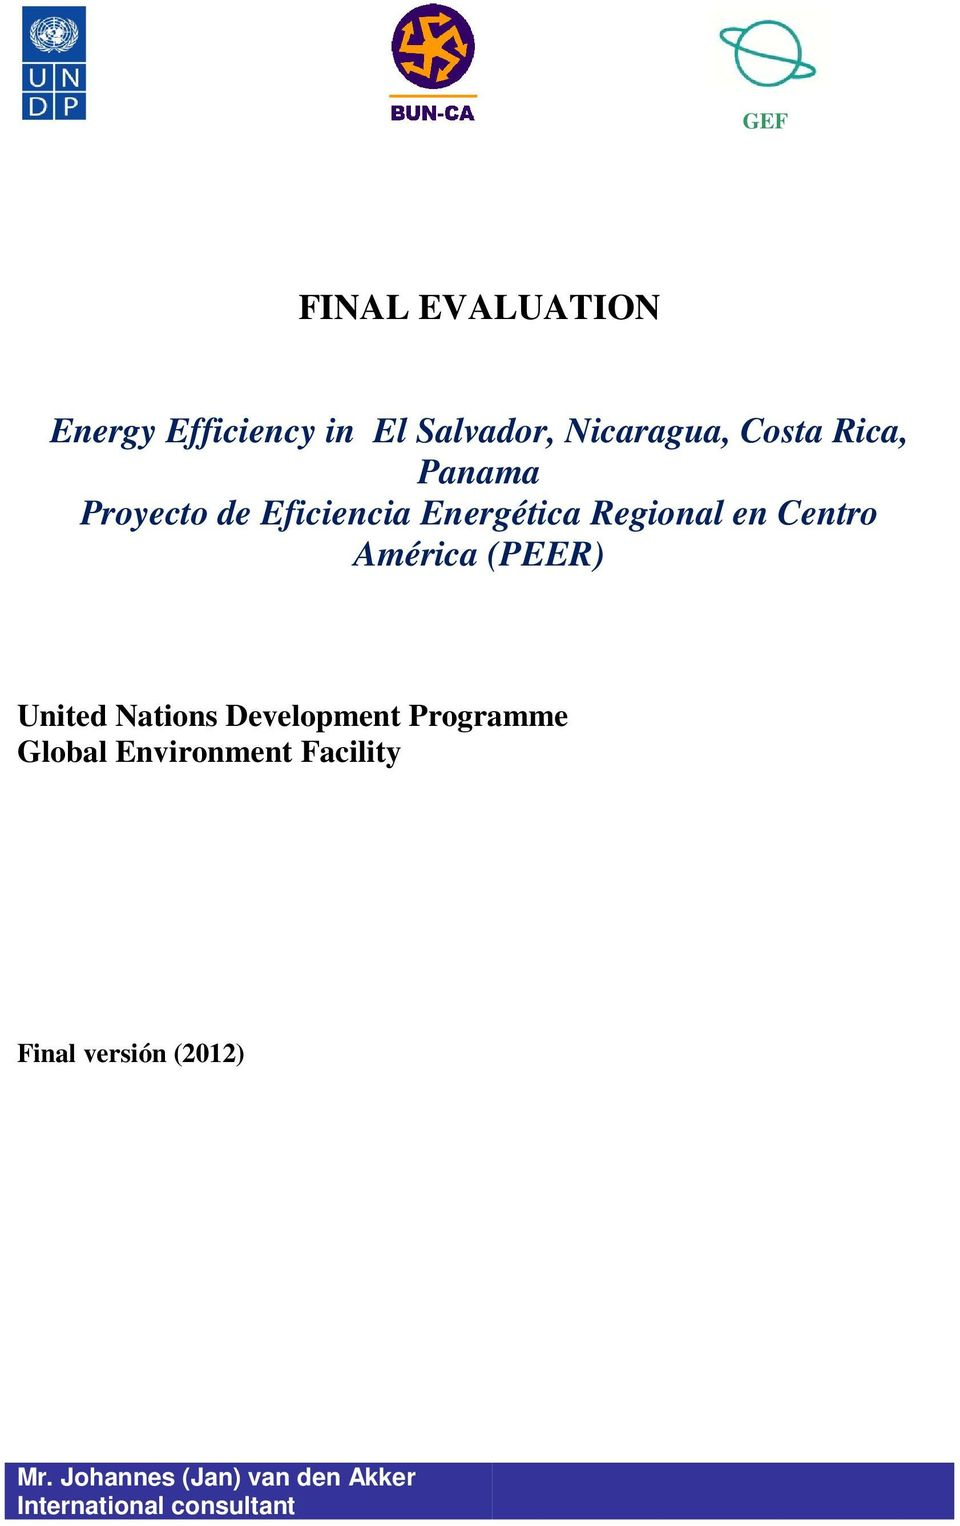 (PEER) United Nations Development Programme Global Environment Facility